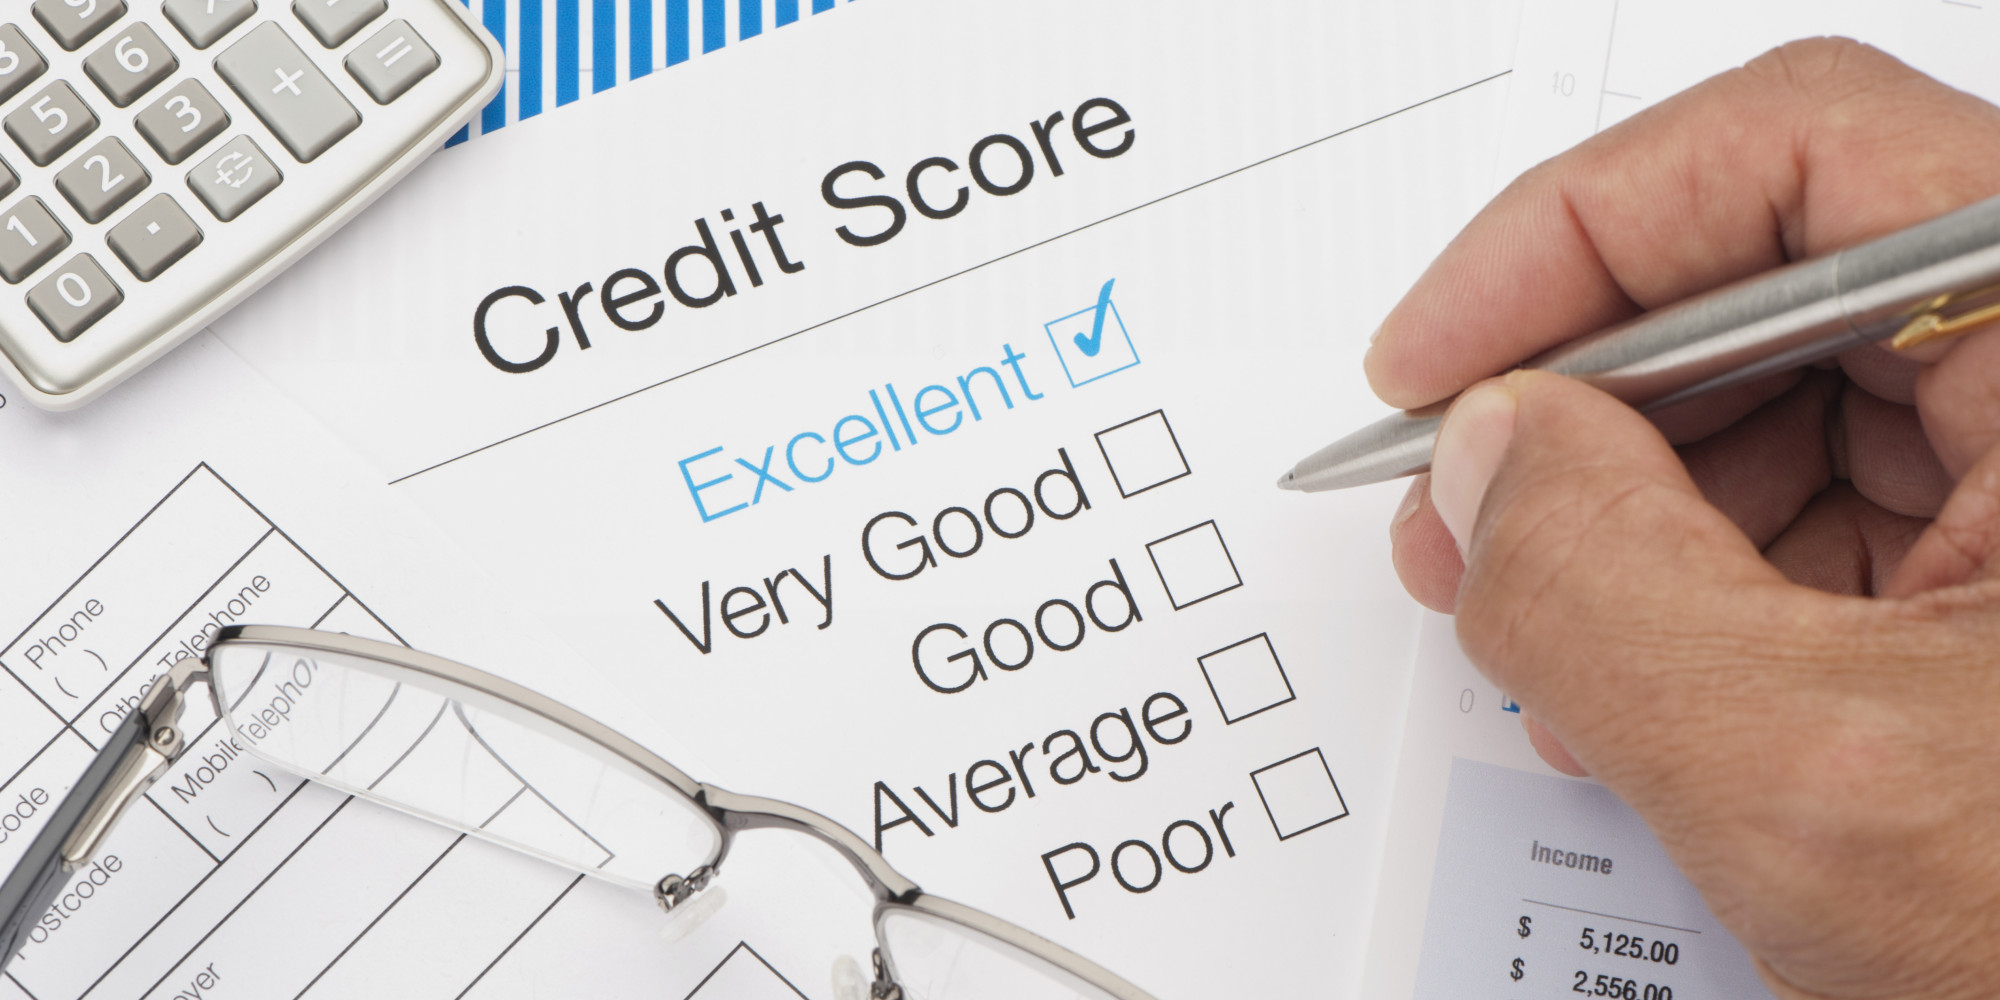 Few Things to Consider When Applying for a Credit Card Online